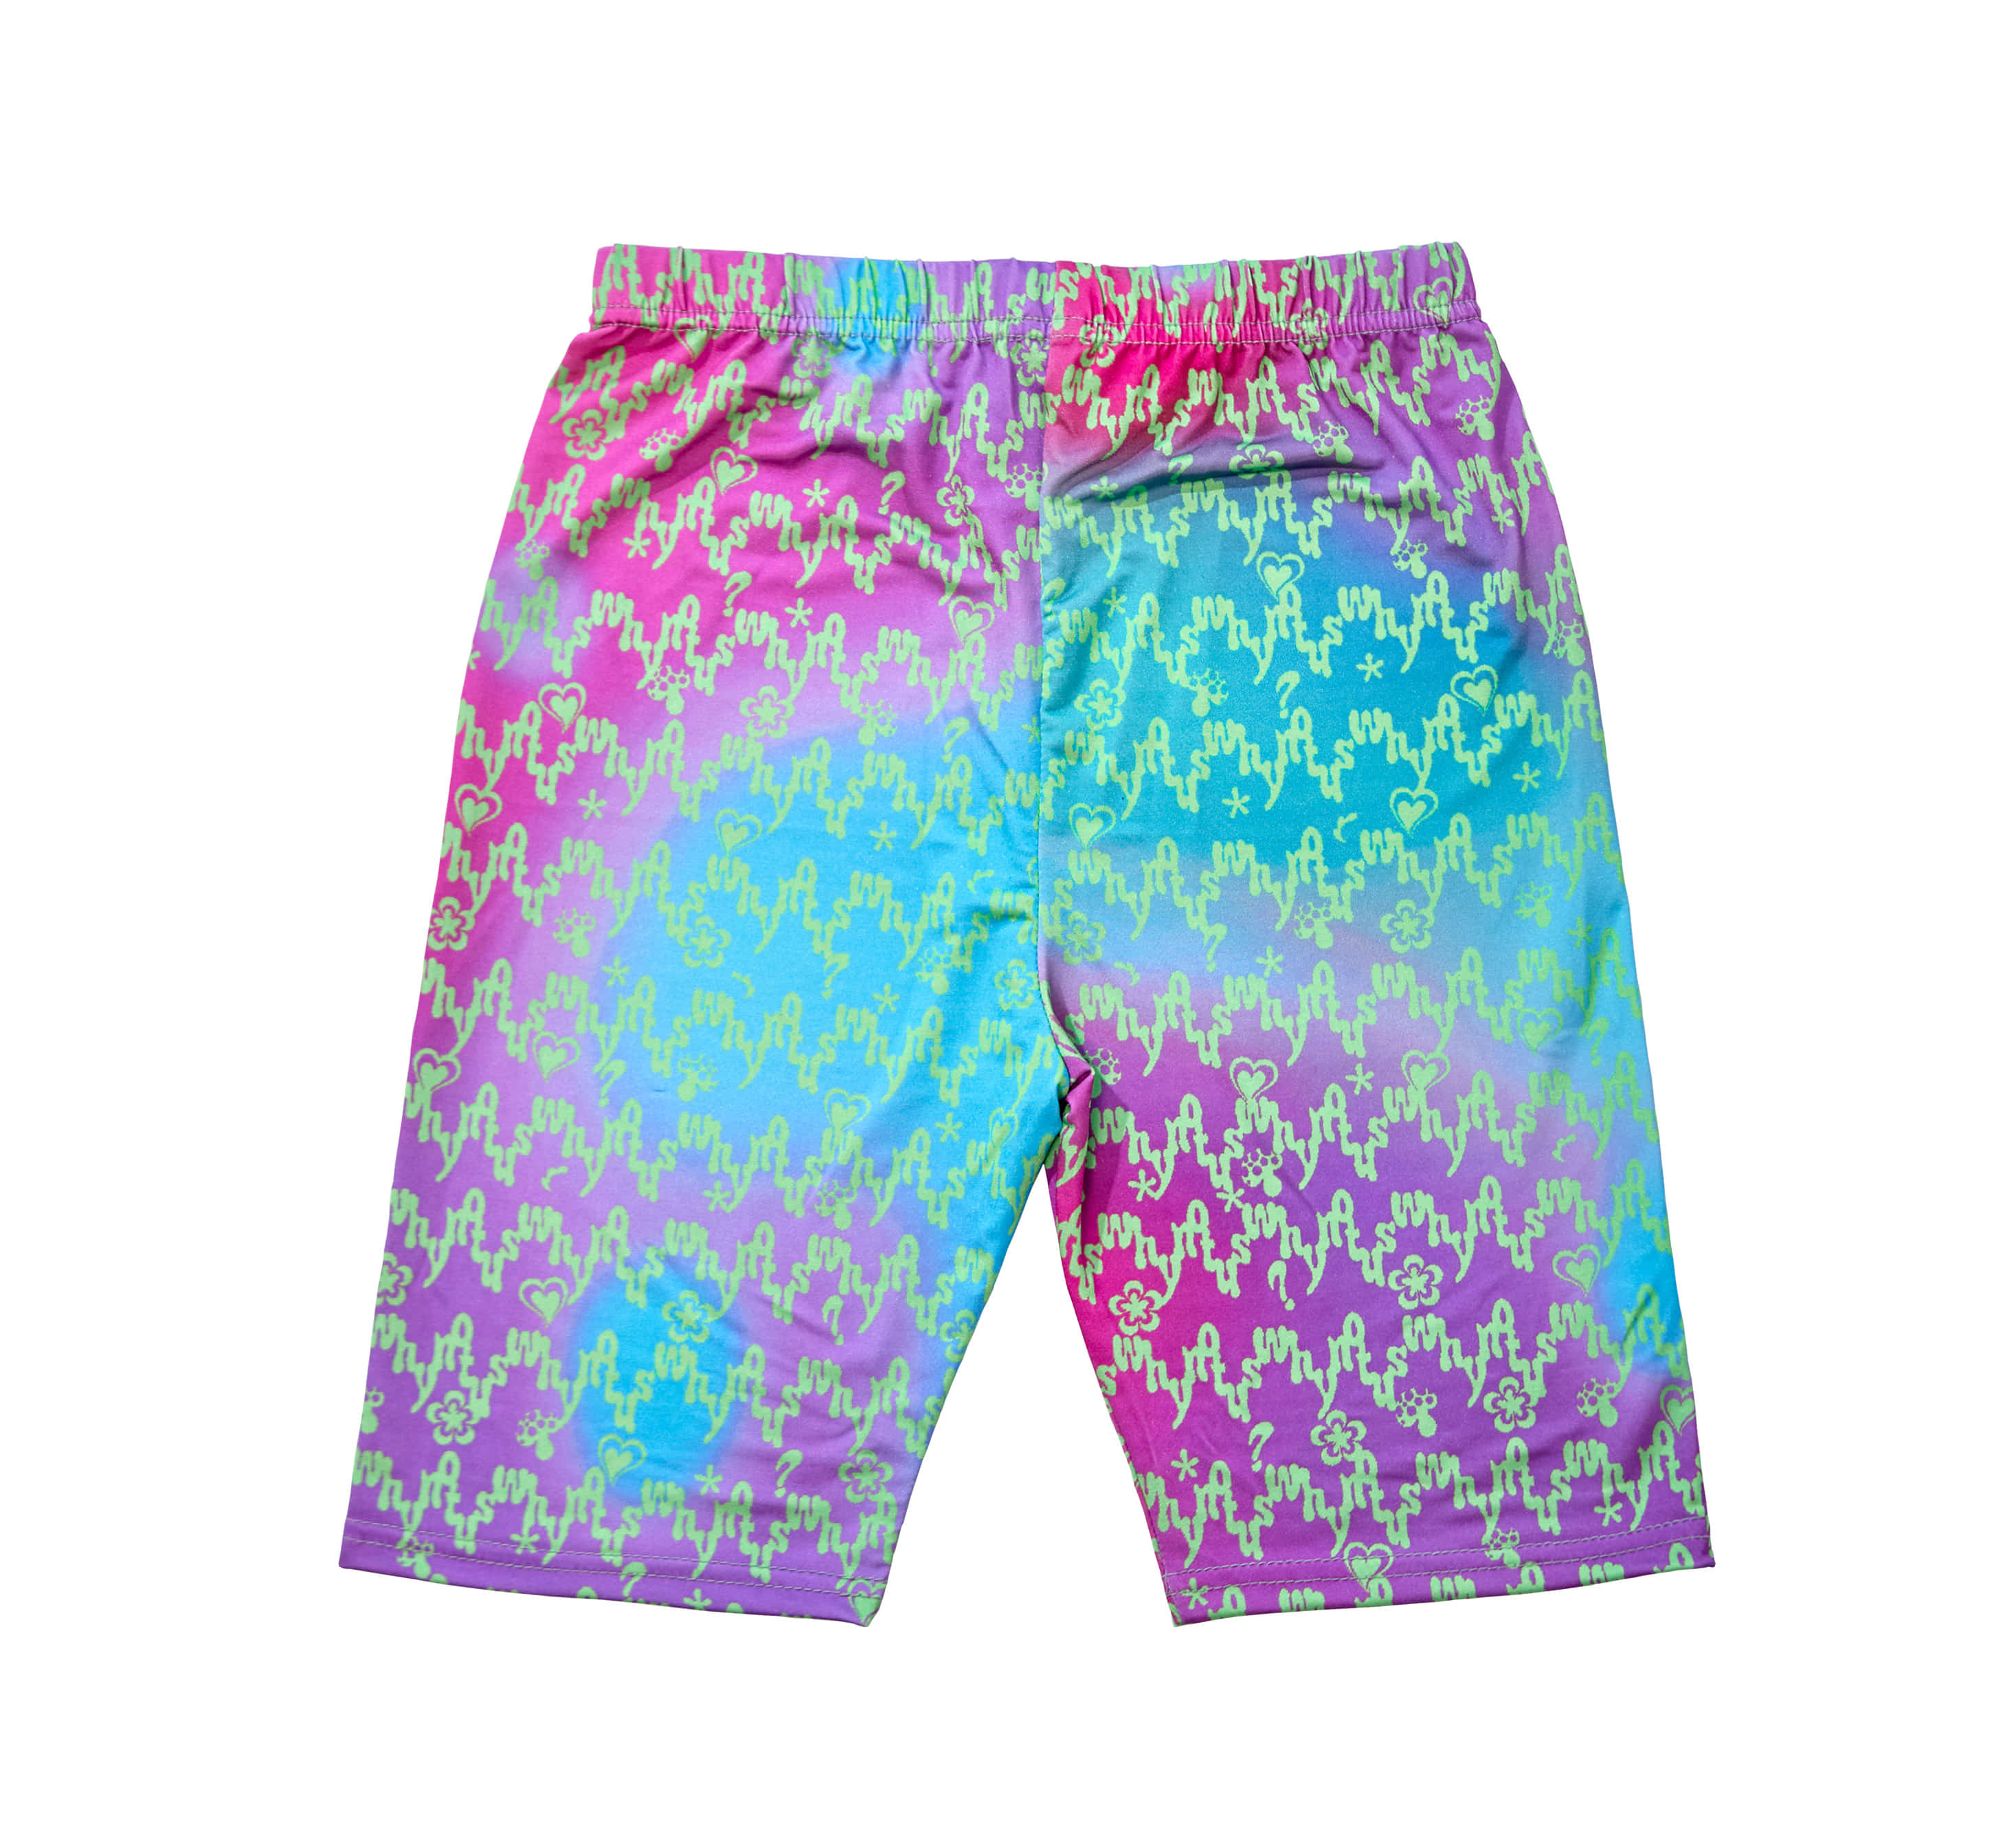 WNUS x RMHN bike shorts - shooting star